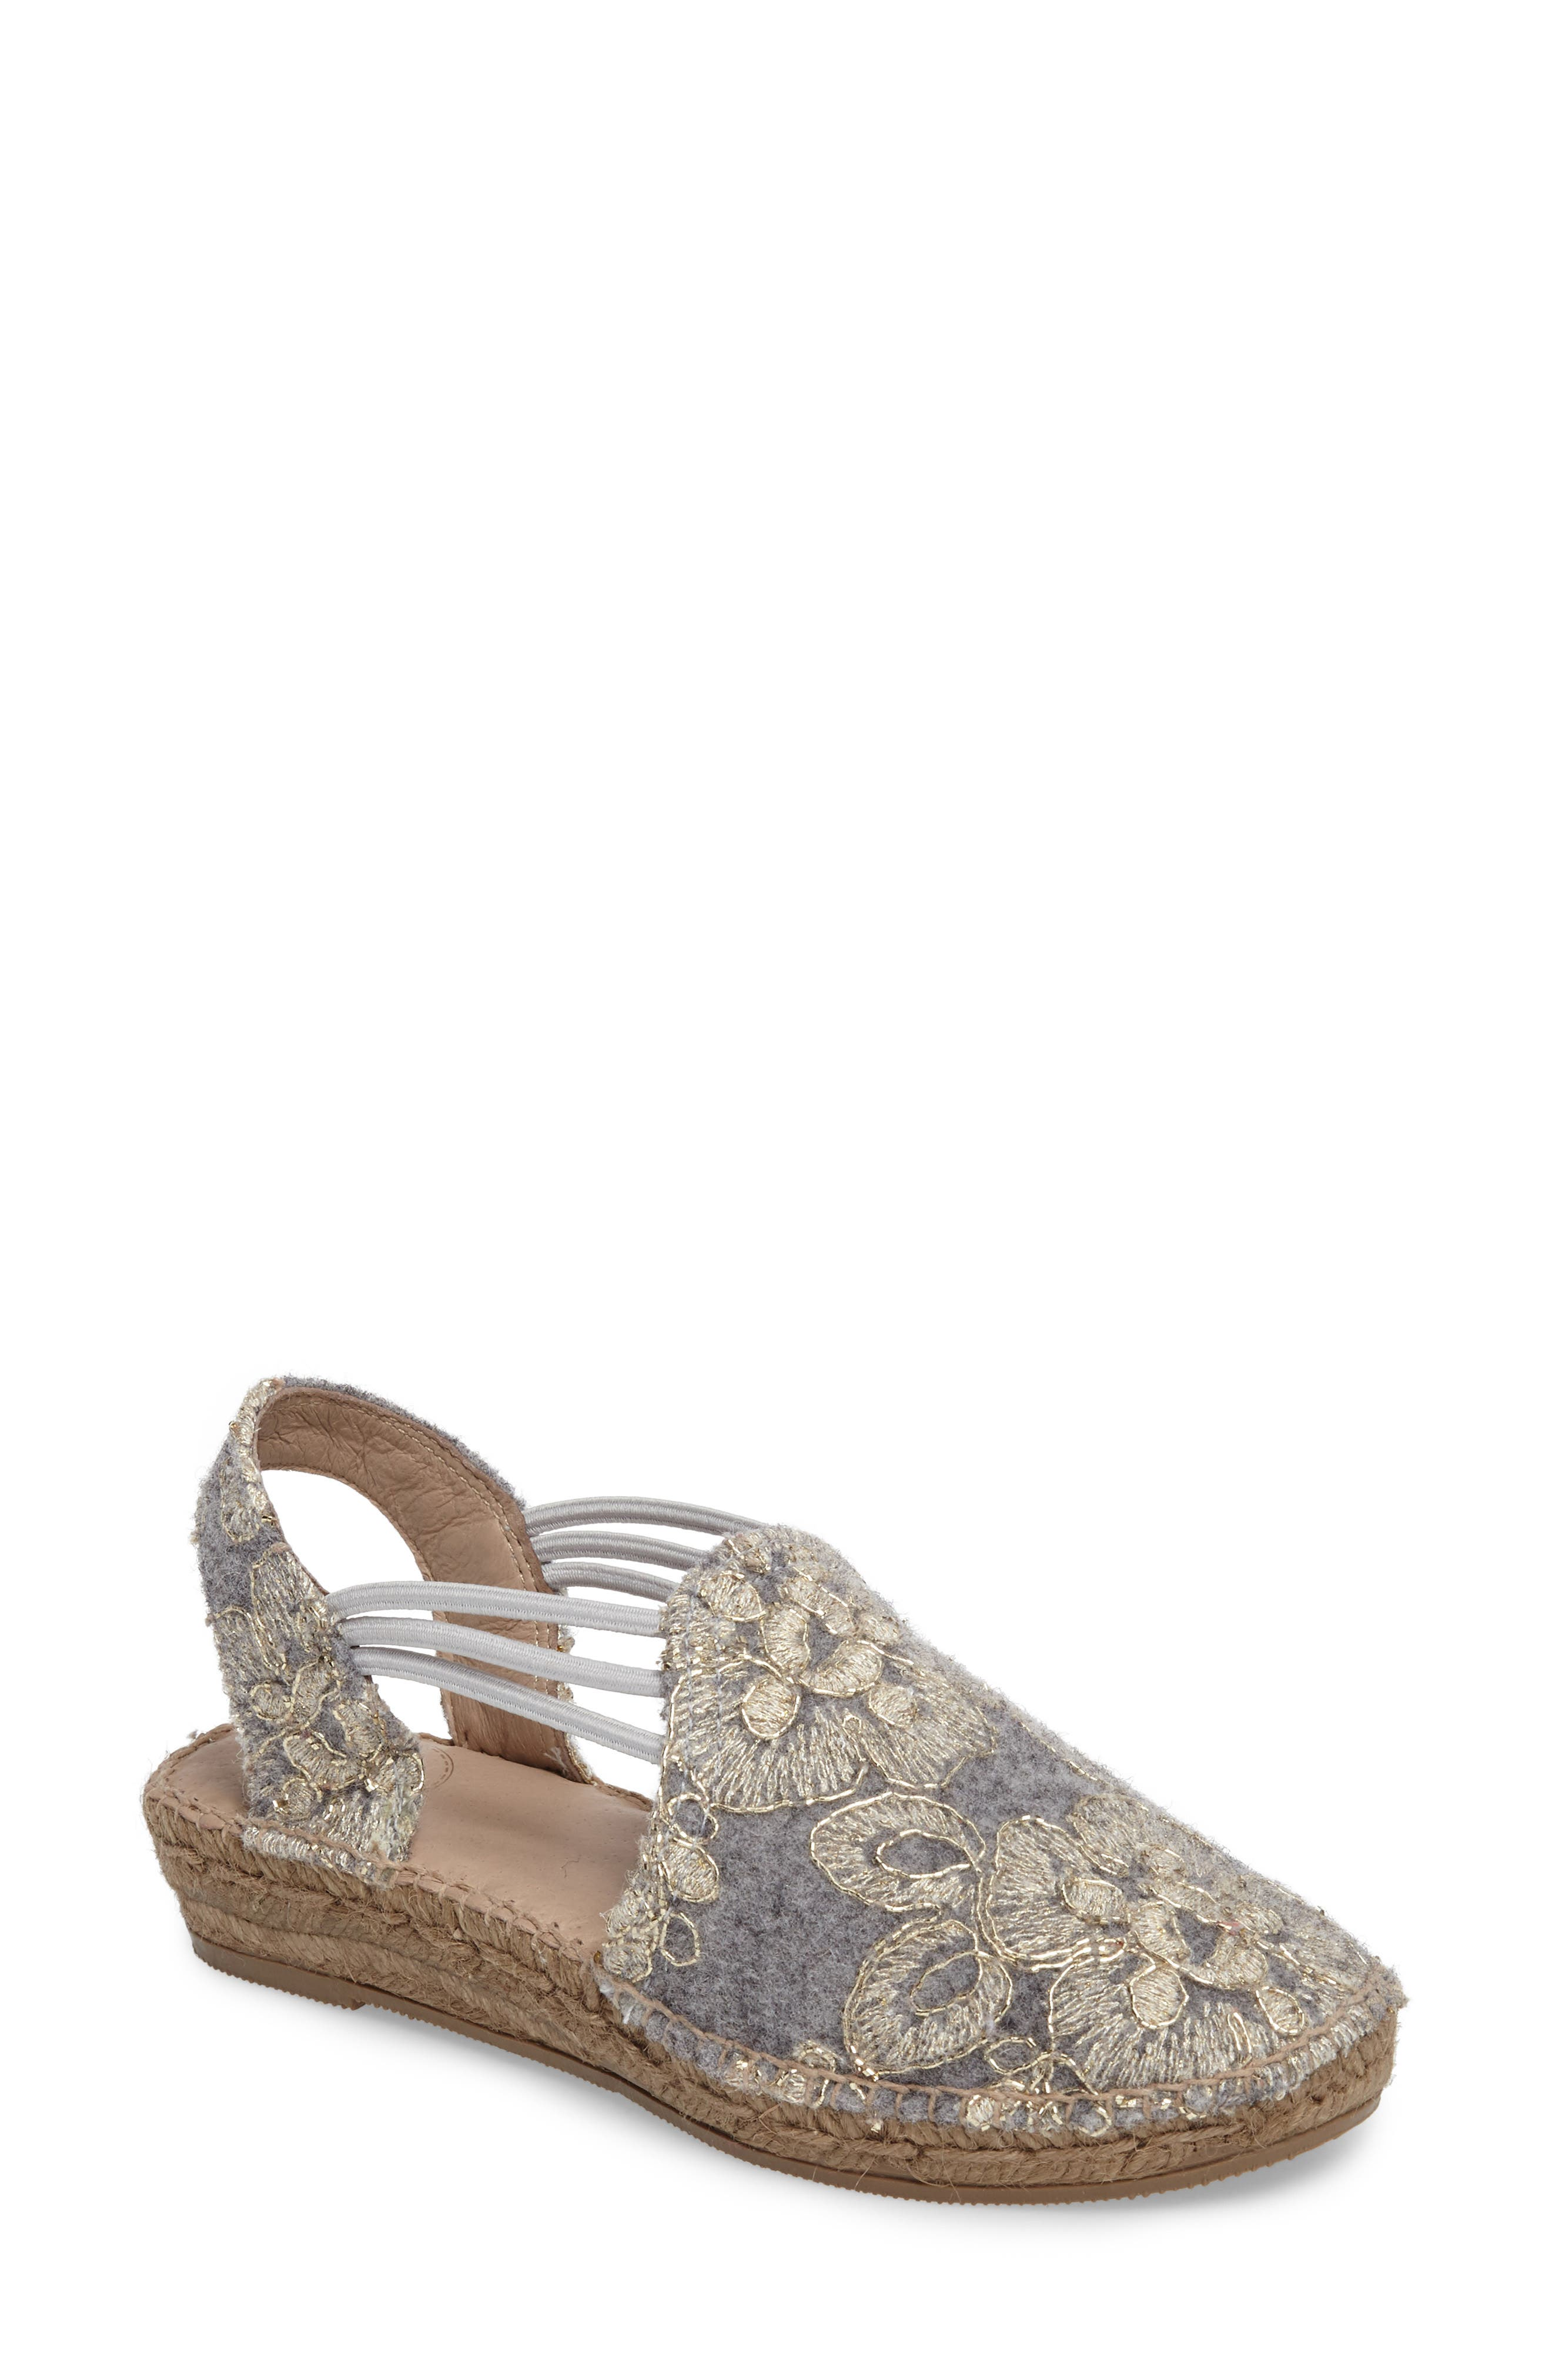 Metz Embroidered Espadrille Wedge,                             Main thumbnail 1, color,                             020